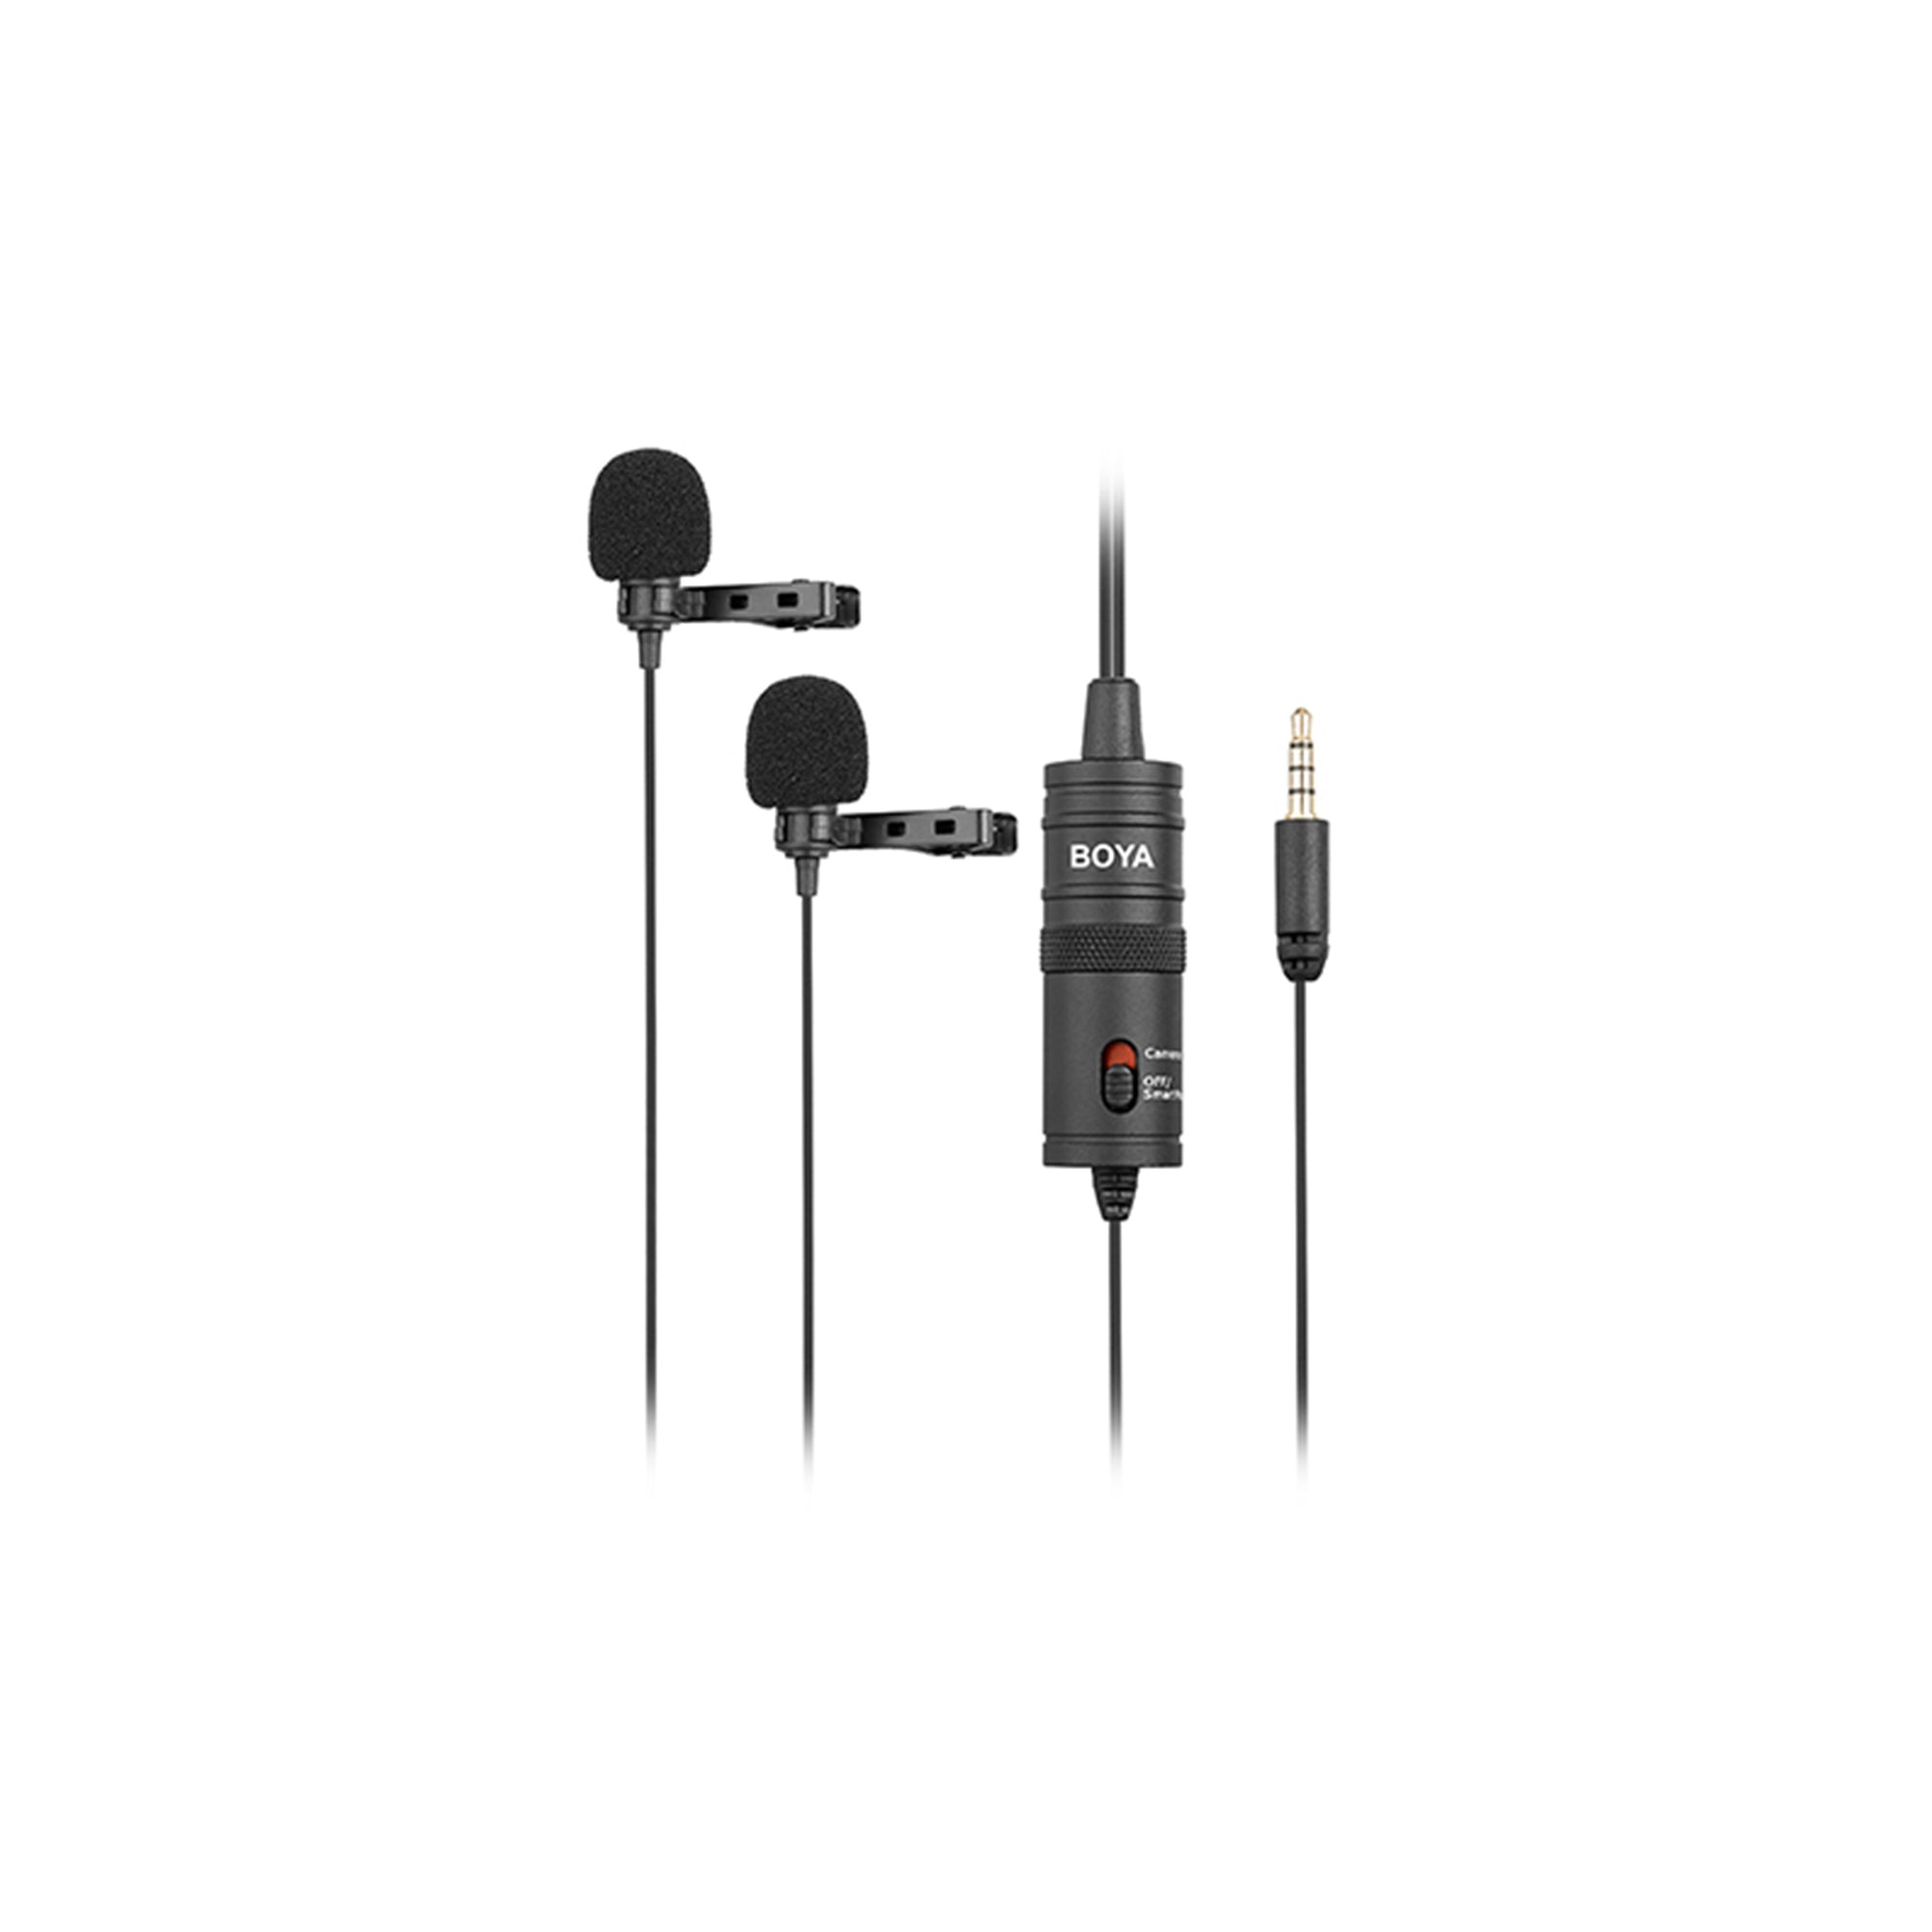 BOYA BY-M1DM Dual Omnidirectional Lavalier Mic